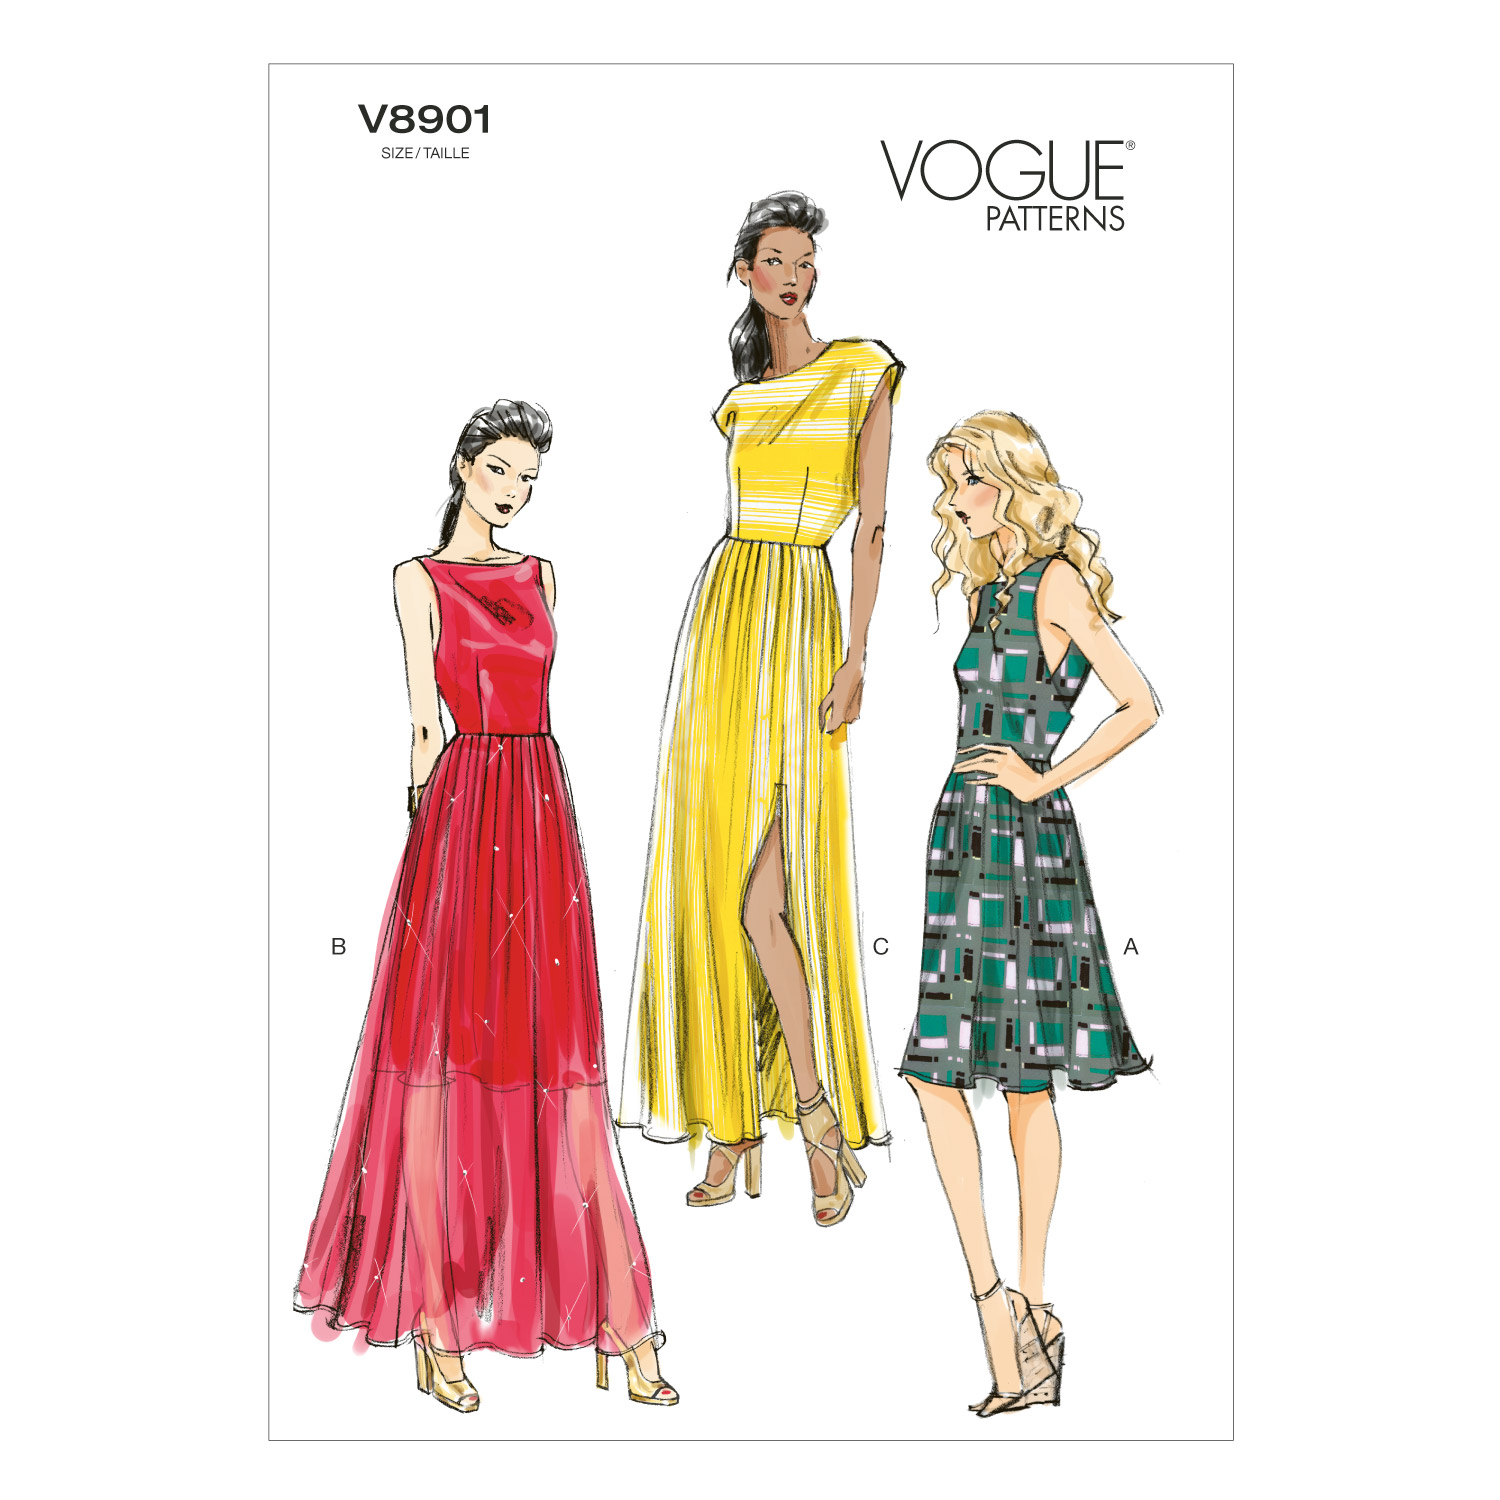 Vogue Patterns Misses Dress-V8901